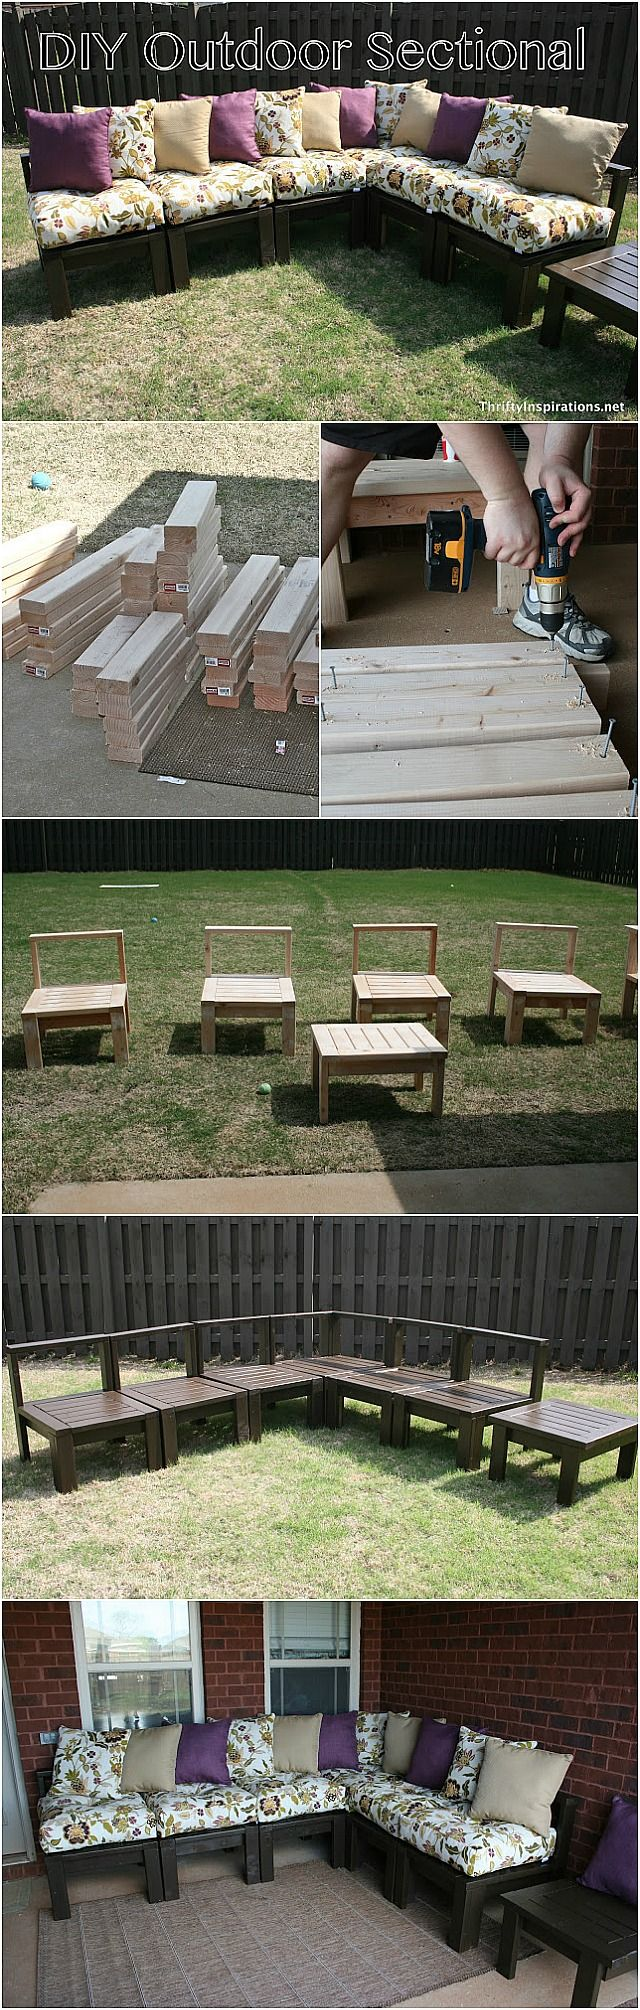 DIY Outdoor Sectional Tutorial - You have to have this in your outdoor living space! This is such an awesome idea!